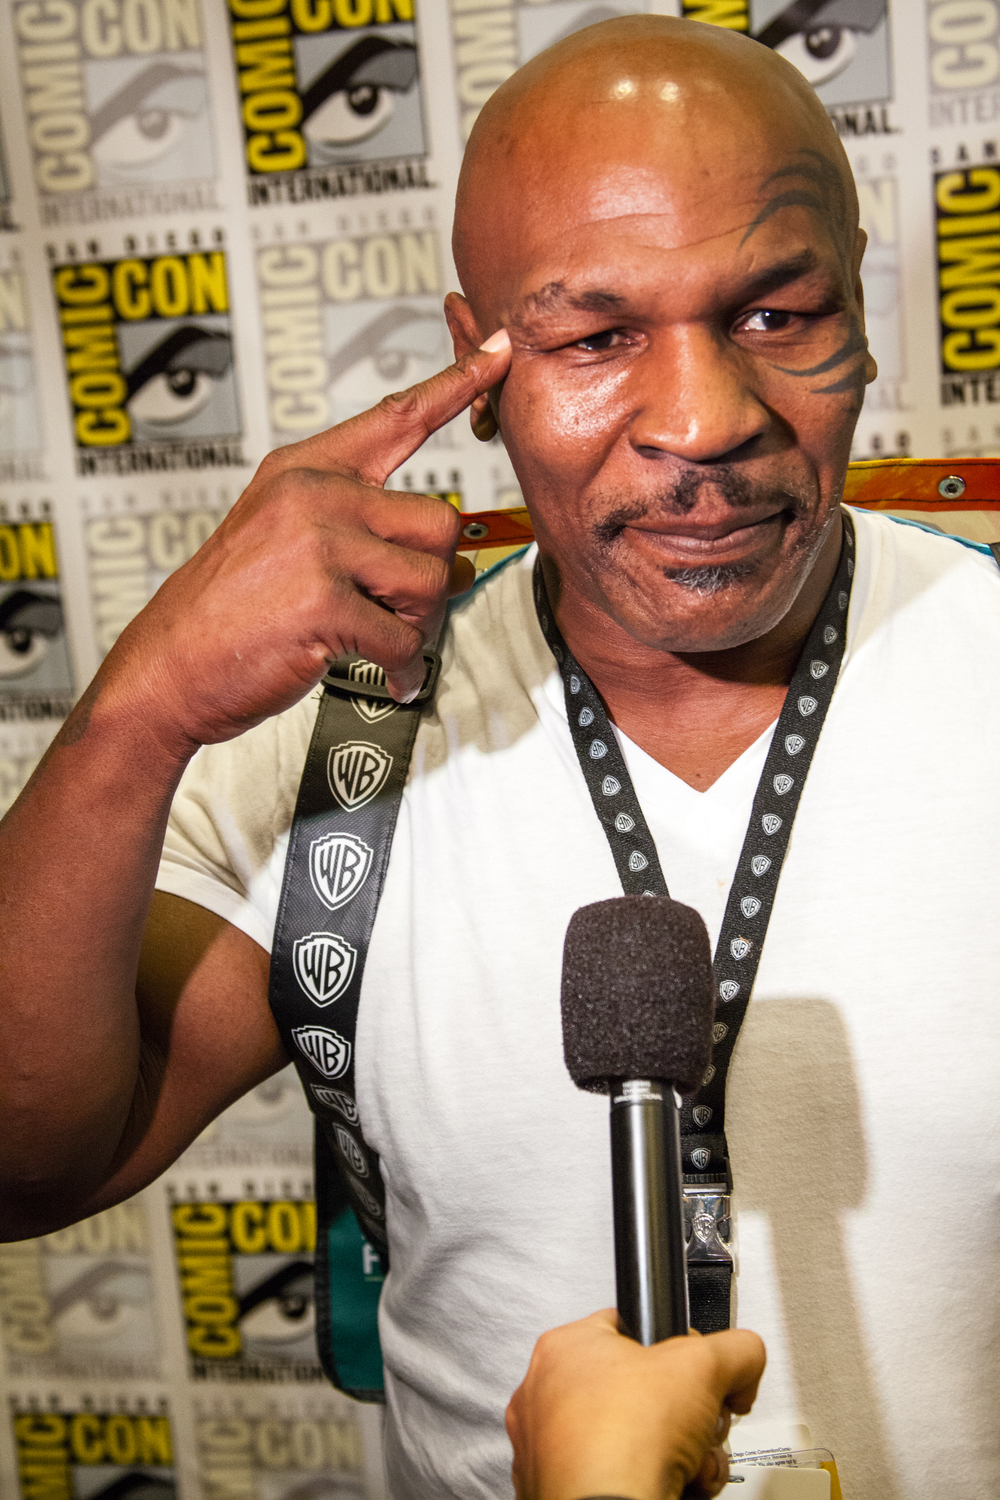 Boxer, Actor, Motivational Speaker Mike Tyson  Photo by Joel Feria